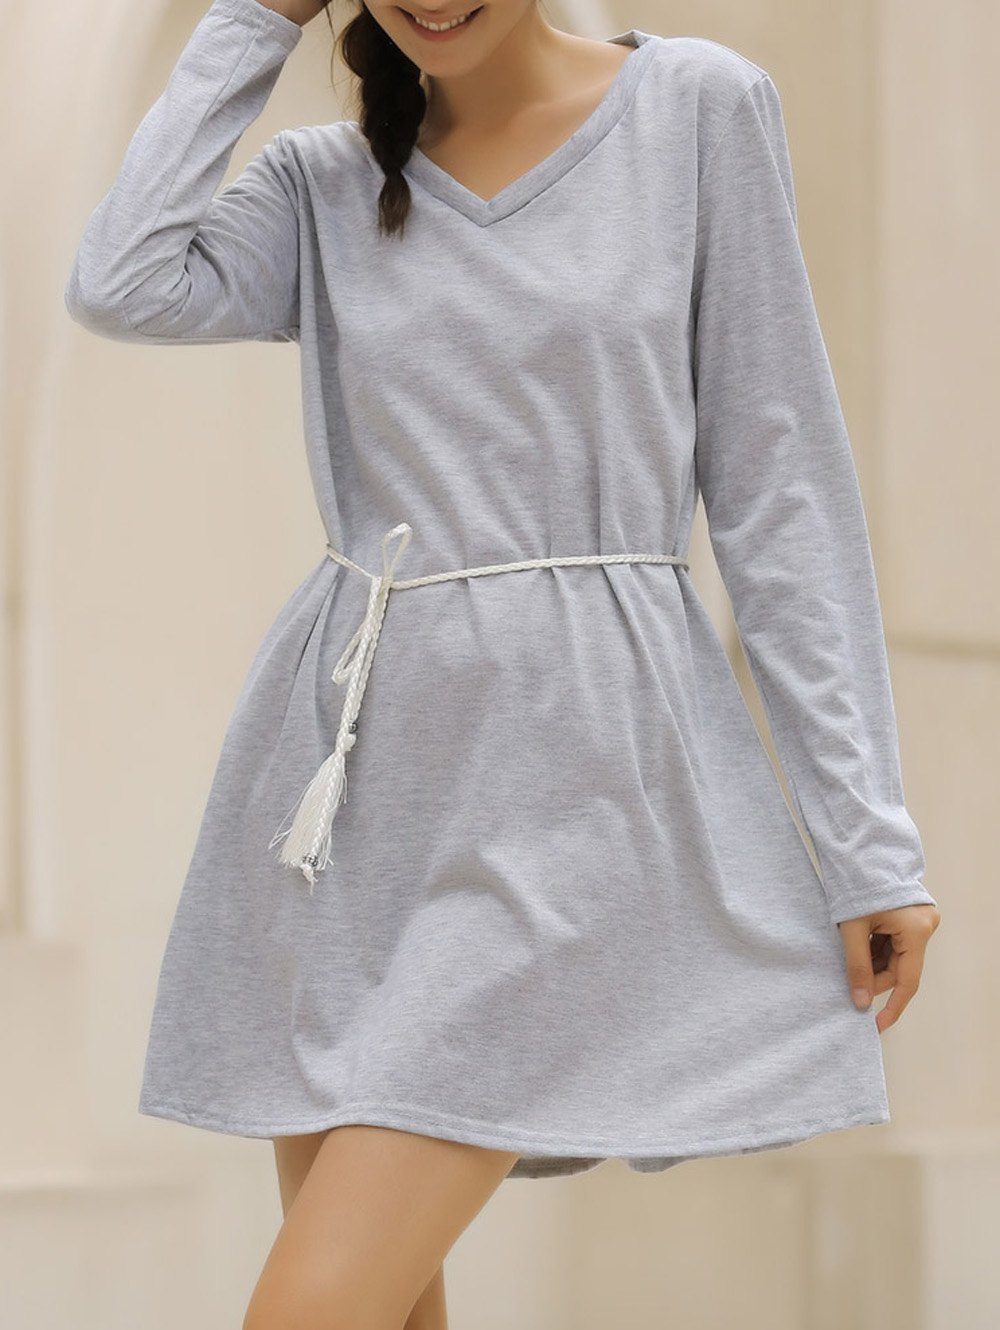 Casual V-Neck Loose-Fitting Long Sleeve Solid Color Dress For Women new original kyocera 302k994980 motor pm regist for ta4500i 5500i 4501i 5501i 6501i 8001i